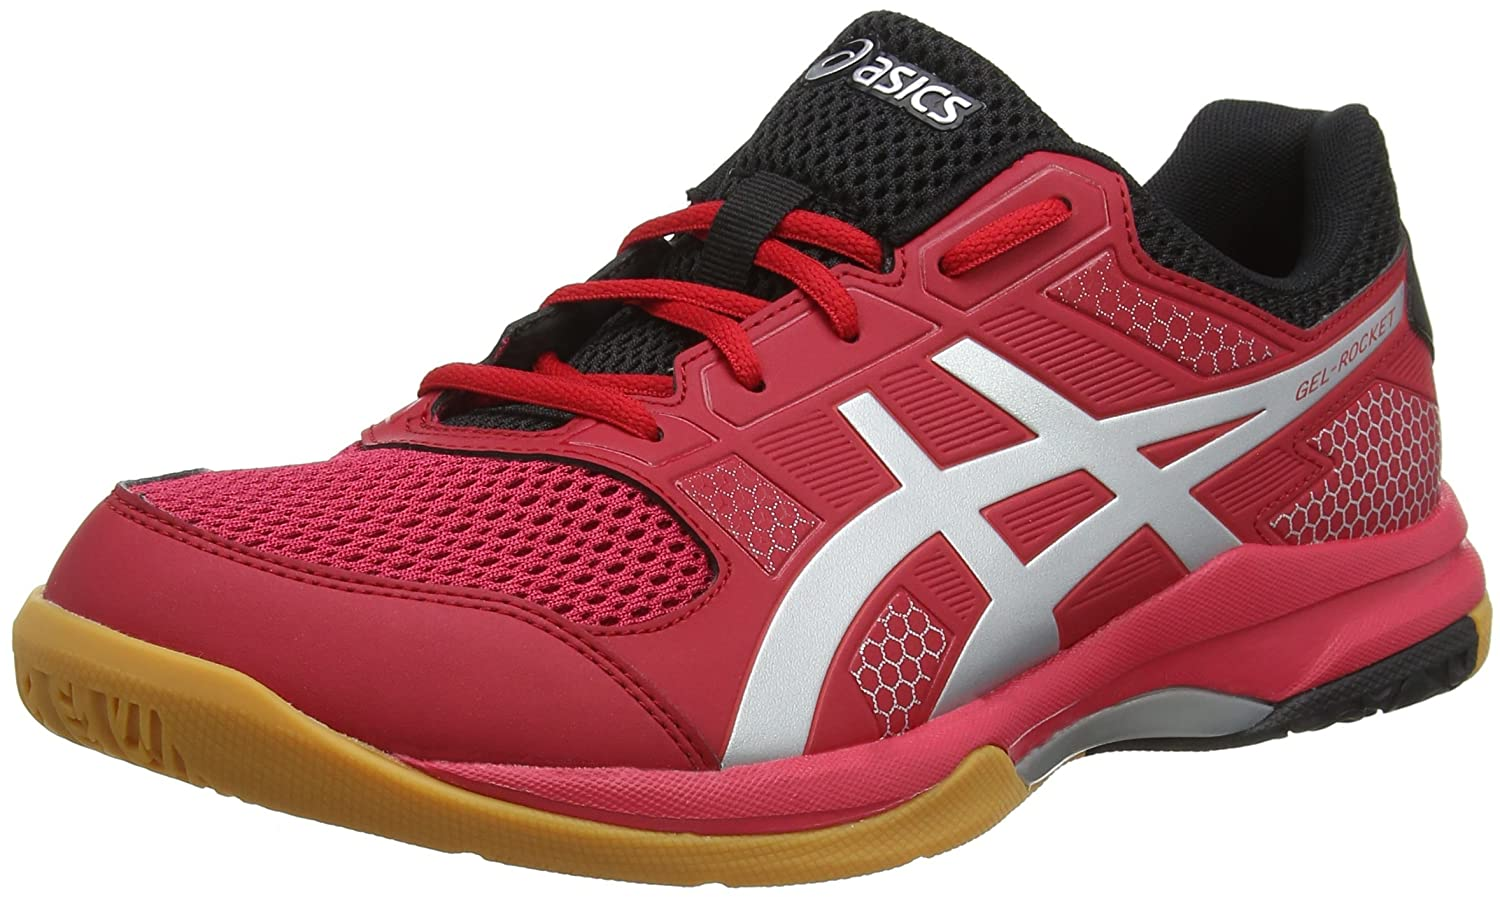 Asics Men's Gel-Rocket 8 Multisport Indoor Shoes, Red (Silver/ Samba),9 UK/44 EU B706Y